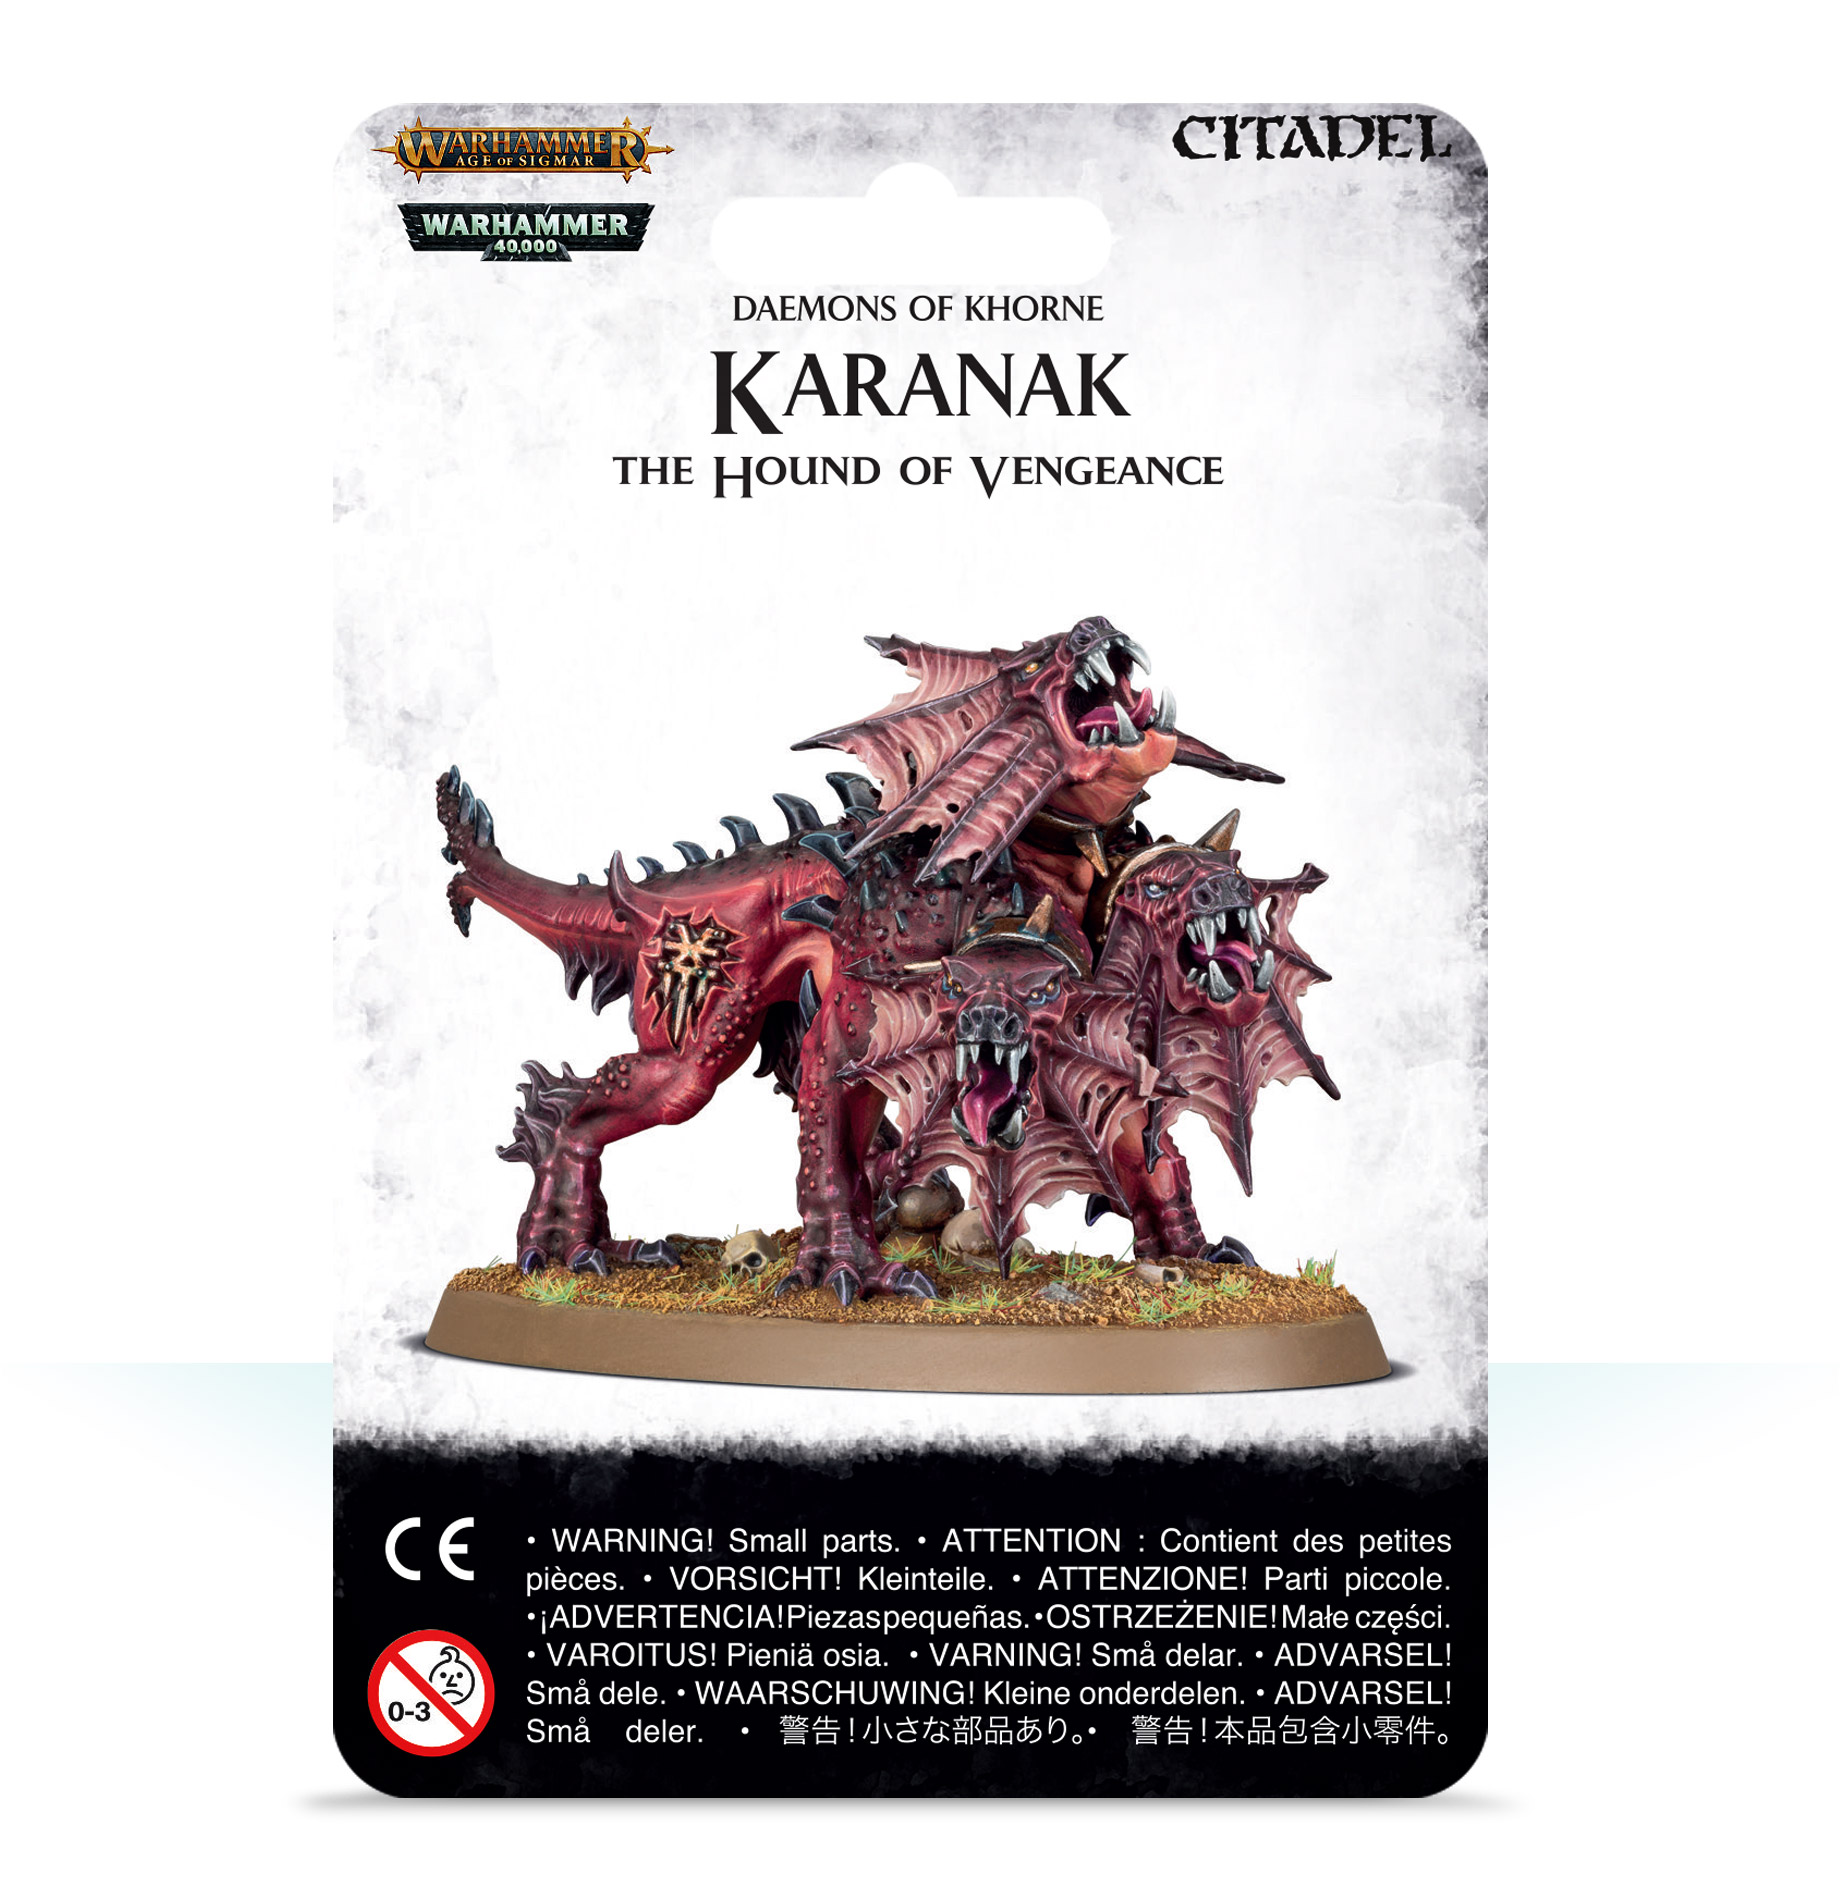 Warhammer 40,000/ Age Of Sigmar: Chaos Daemons: Karanak The Hound of Vengeance